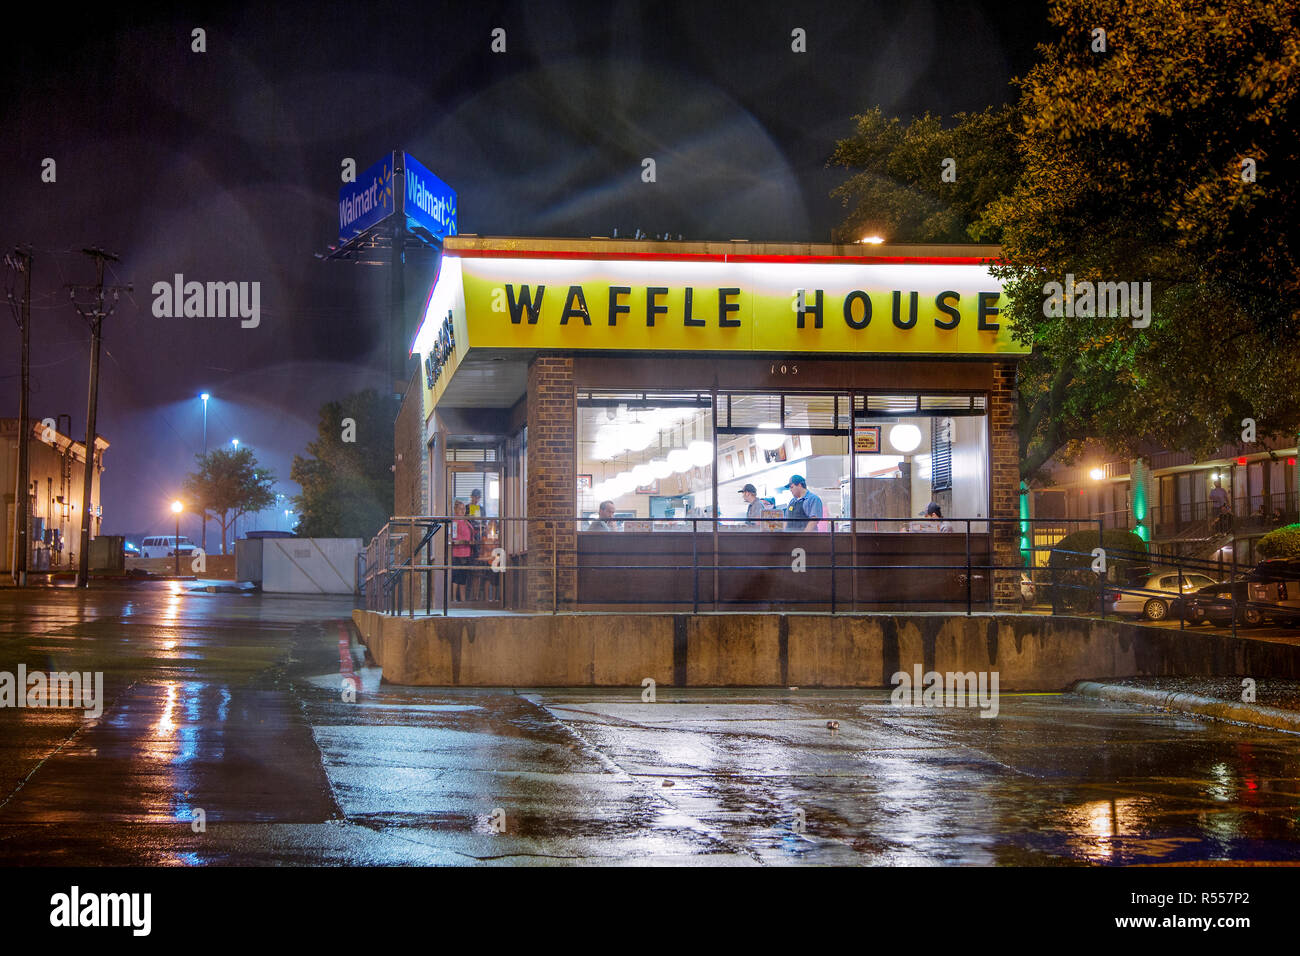 Patrons at a local Waffle House eat their greasy spoon fast food while rain is pouring down outside. - Stock Image